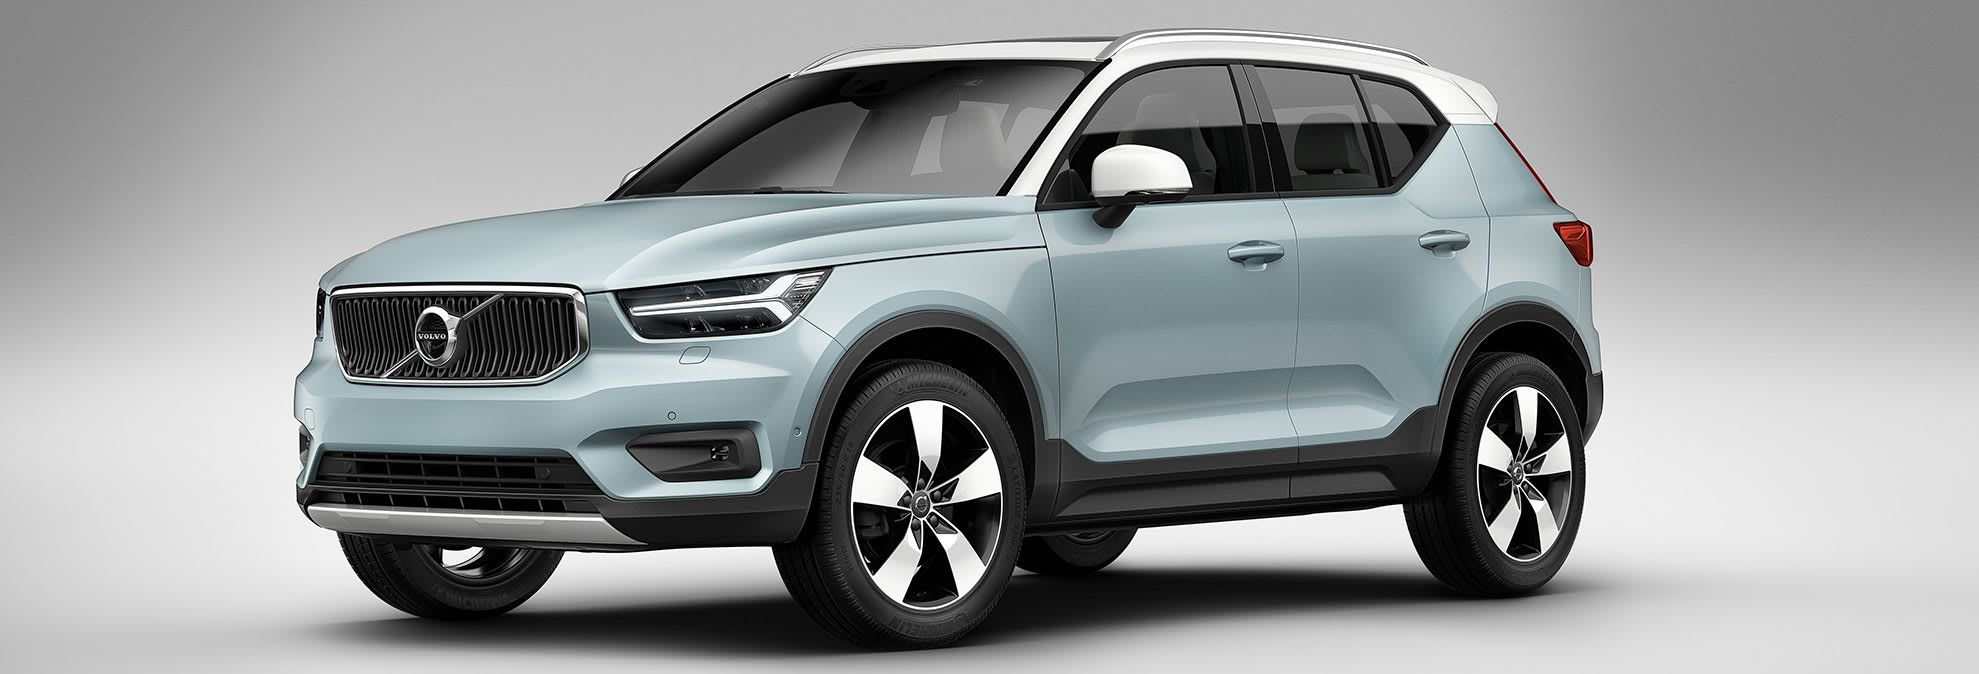 2019 Volvo XC40 SUV Goes Small and Upscale